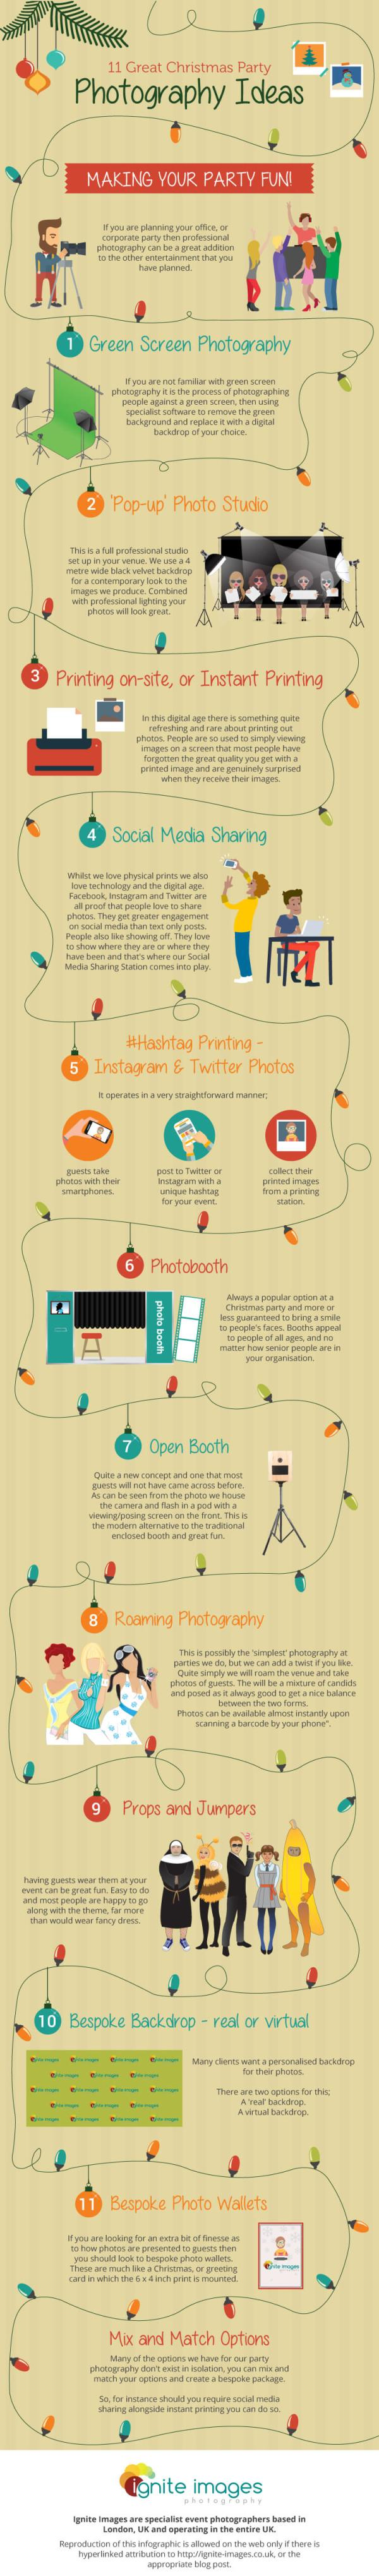 Christmas-Party-Ideas-infographic